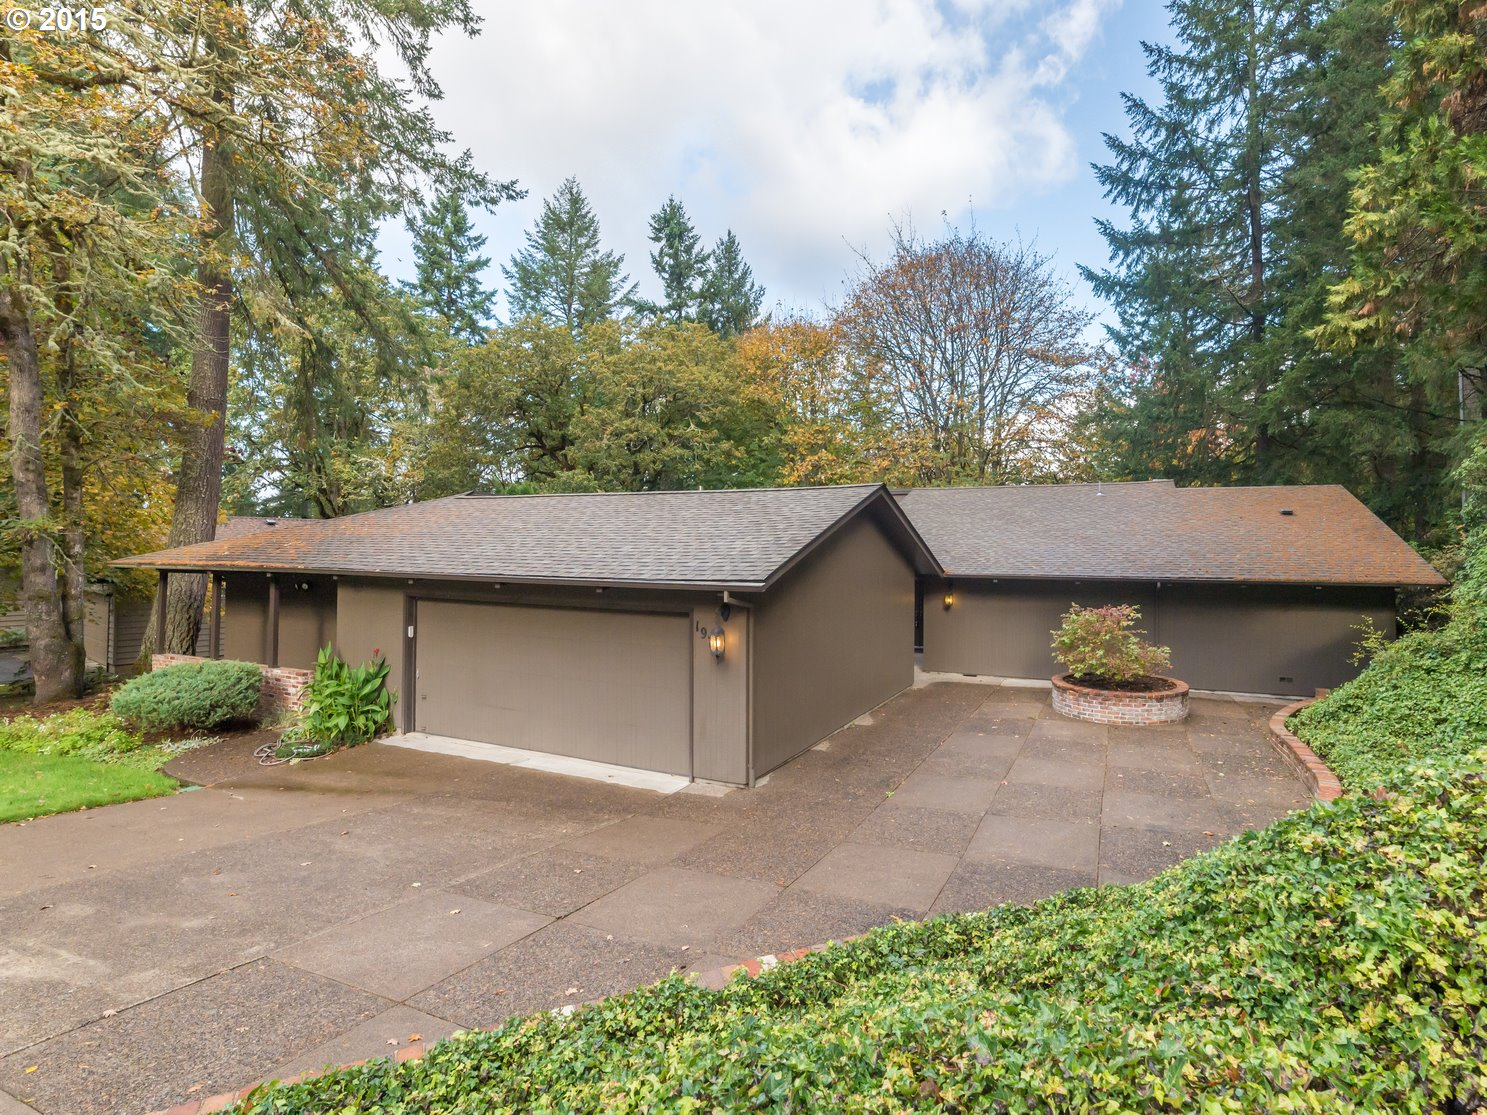 1975 Kimberly Dr, Eugene, OR